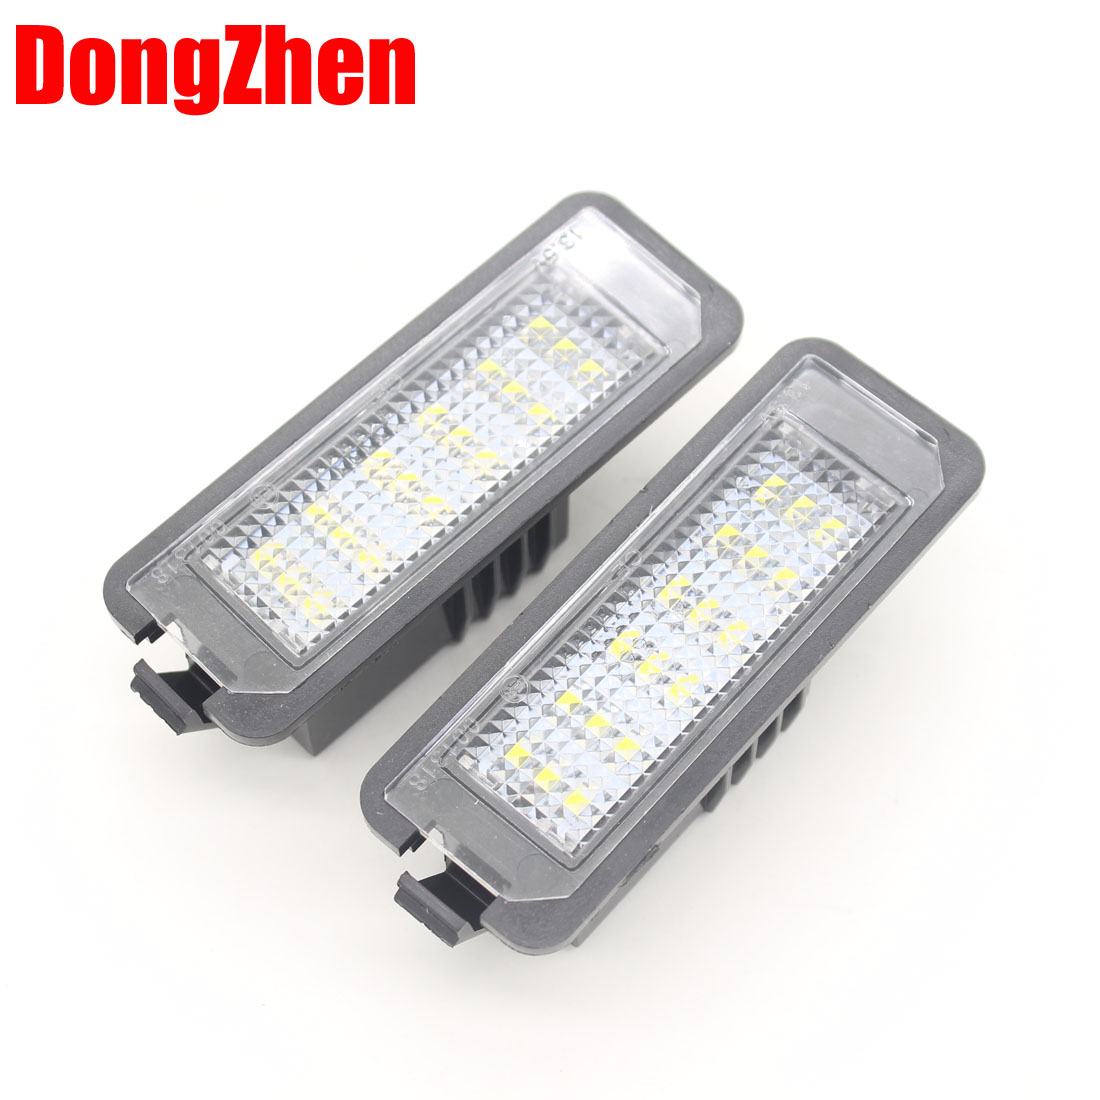 DongZhen auto accessories car styling Fit for Golf4 Golf5 Passat Polo LED License plate lights Free shipping  2pcs<br><br>Aliexpress